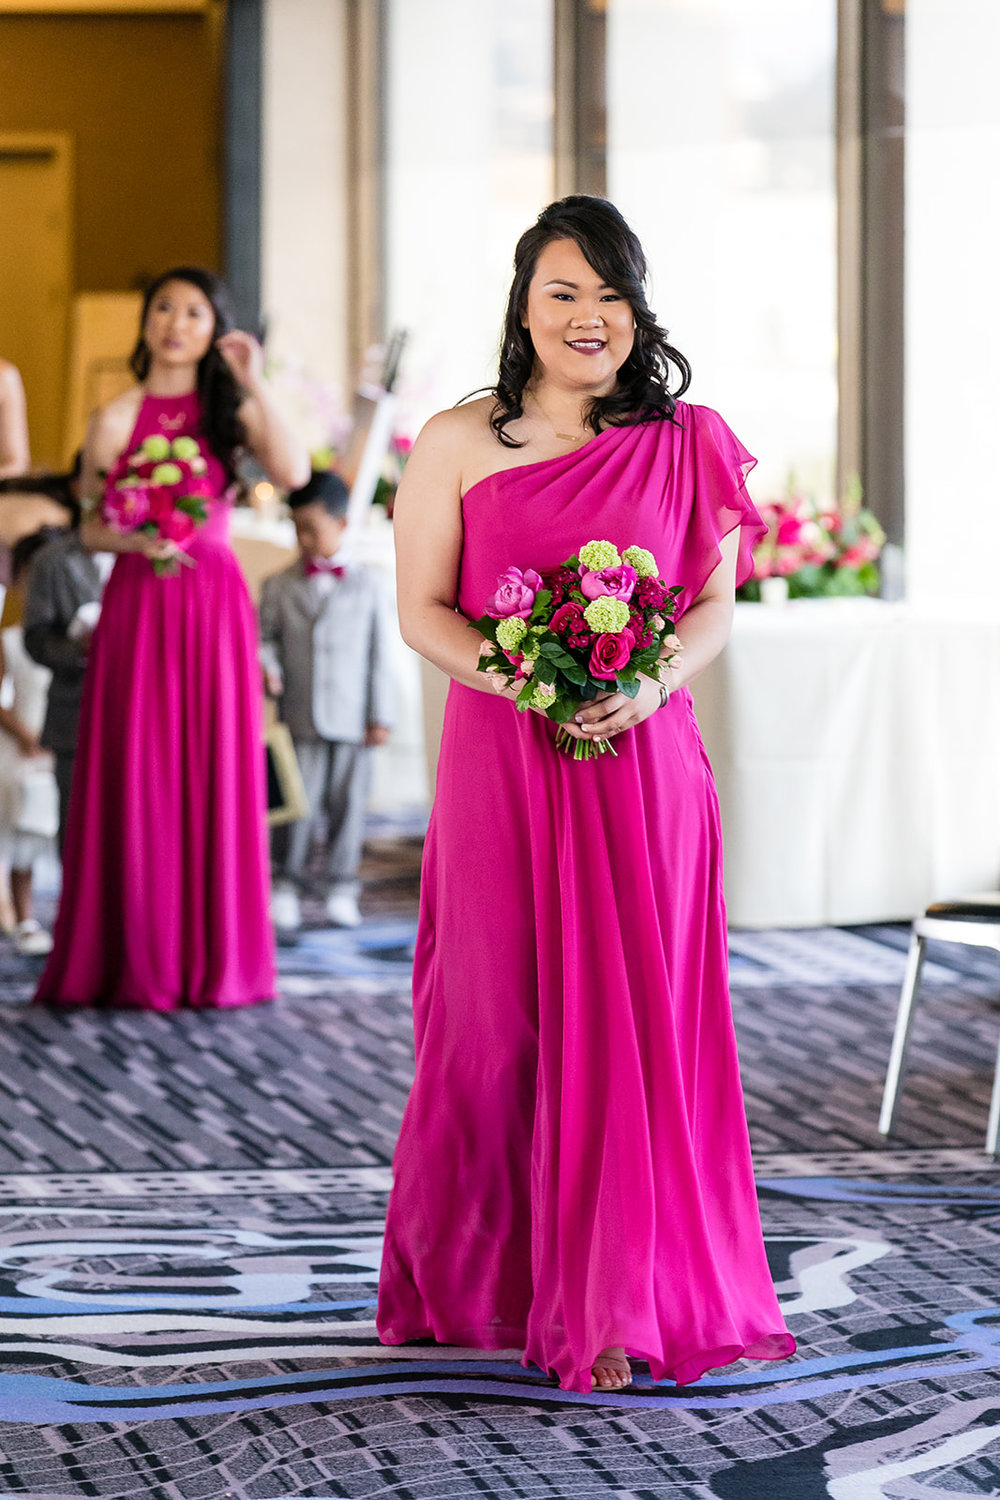 2018_05_19_Wedding_Nyon_0792.jpg